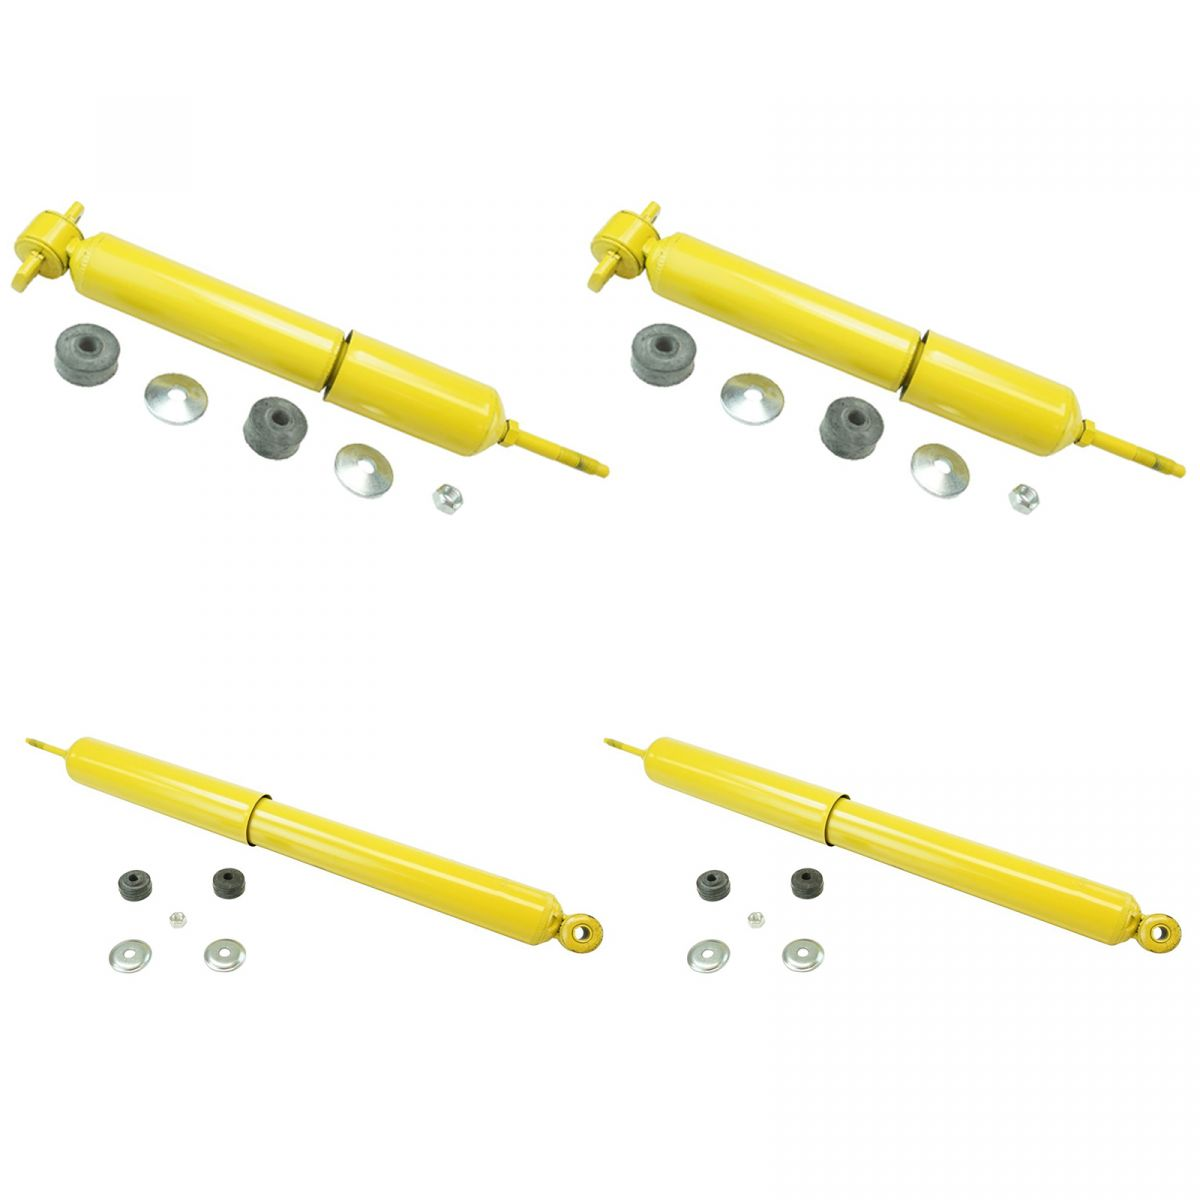 Monroe New Shocks Front /& Rear Fits Ford F-150 97-03 2WD